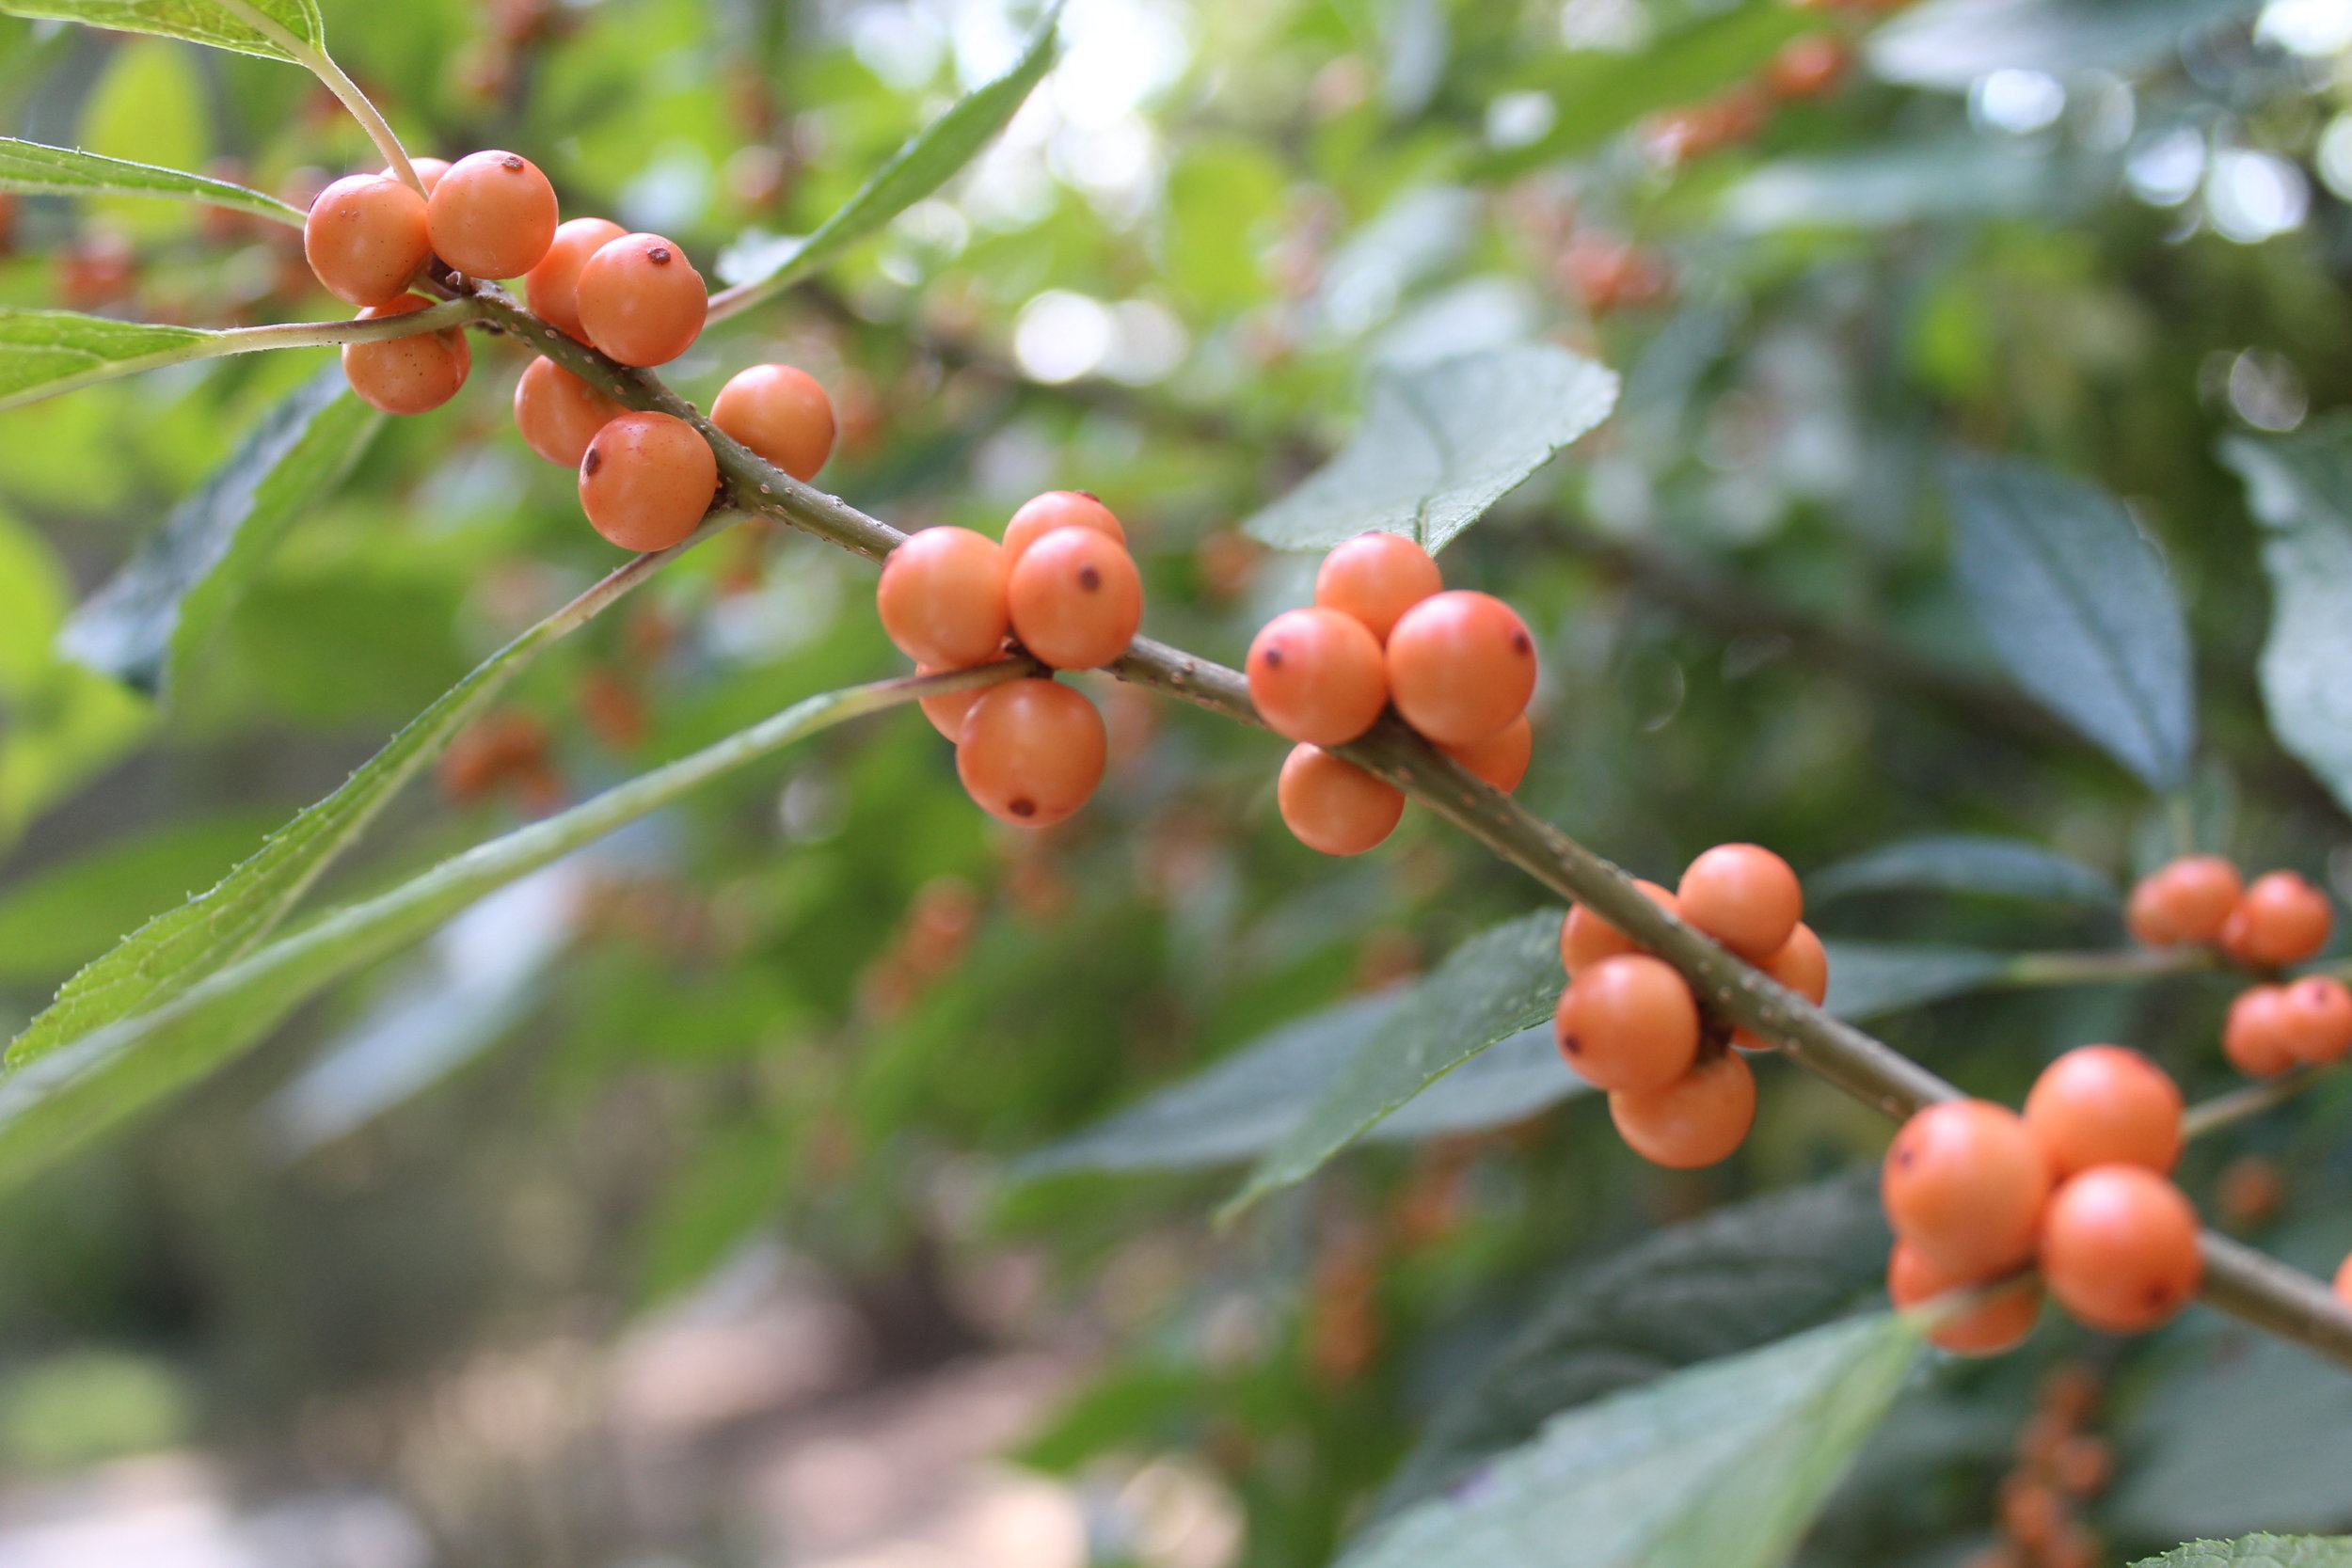 'Wintergold' winterberry has yellowish-orange berries. Shrub matures at 5'-8' x 5'-8'.